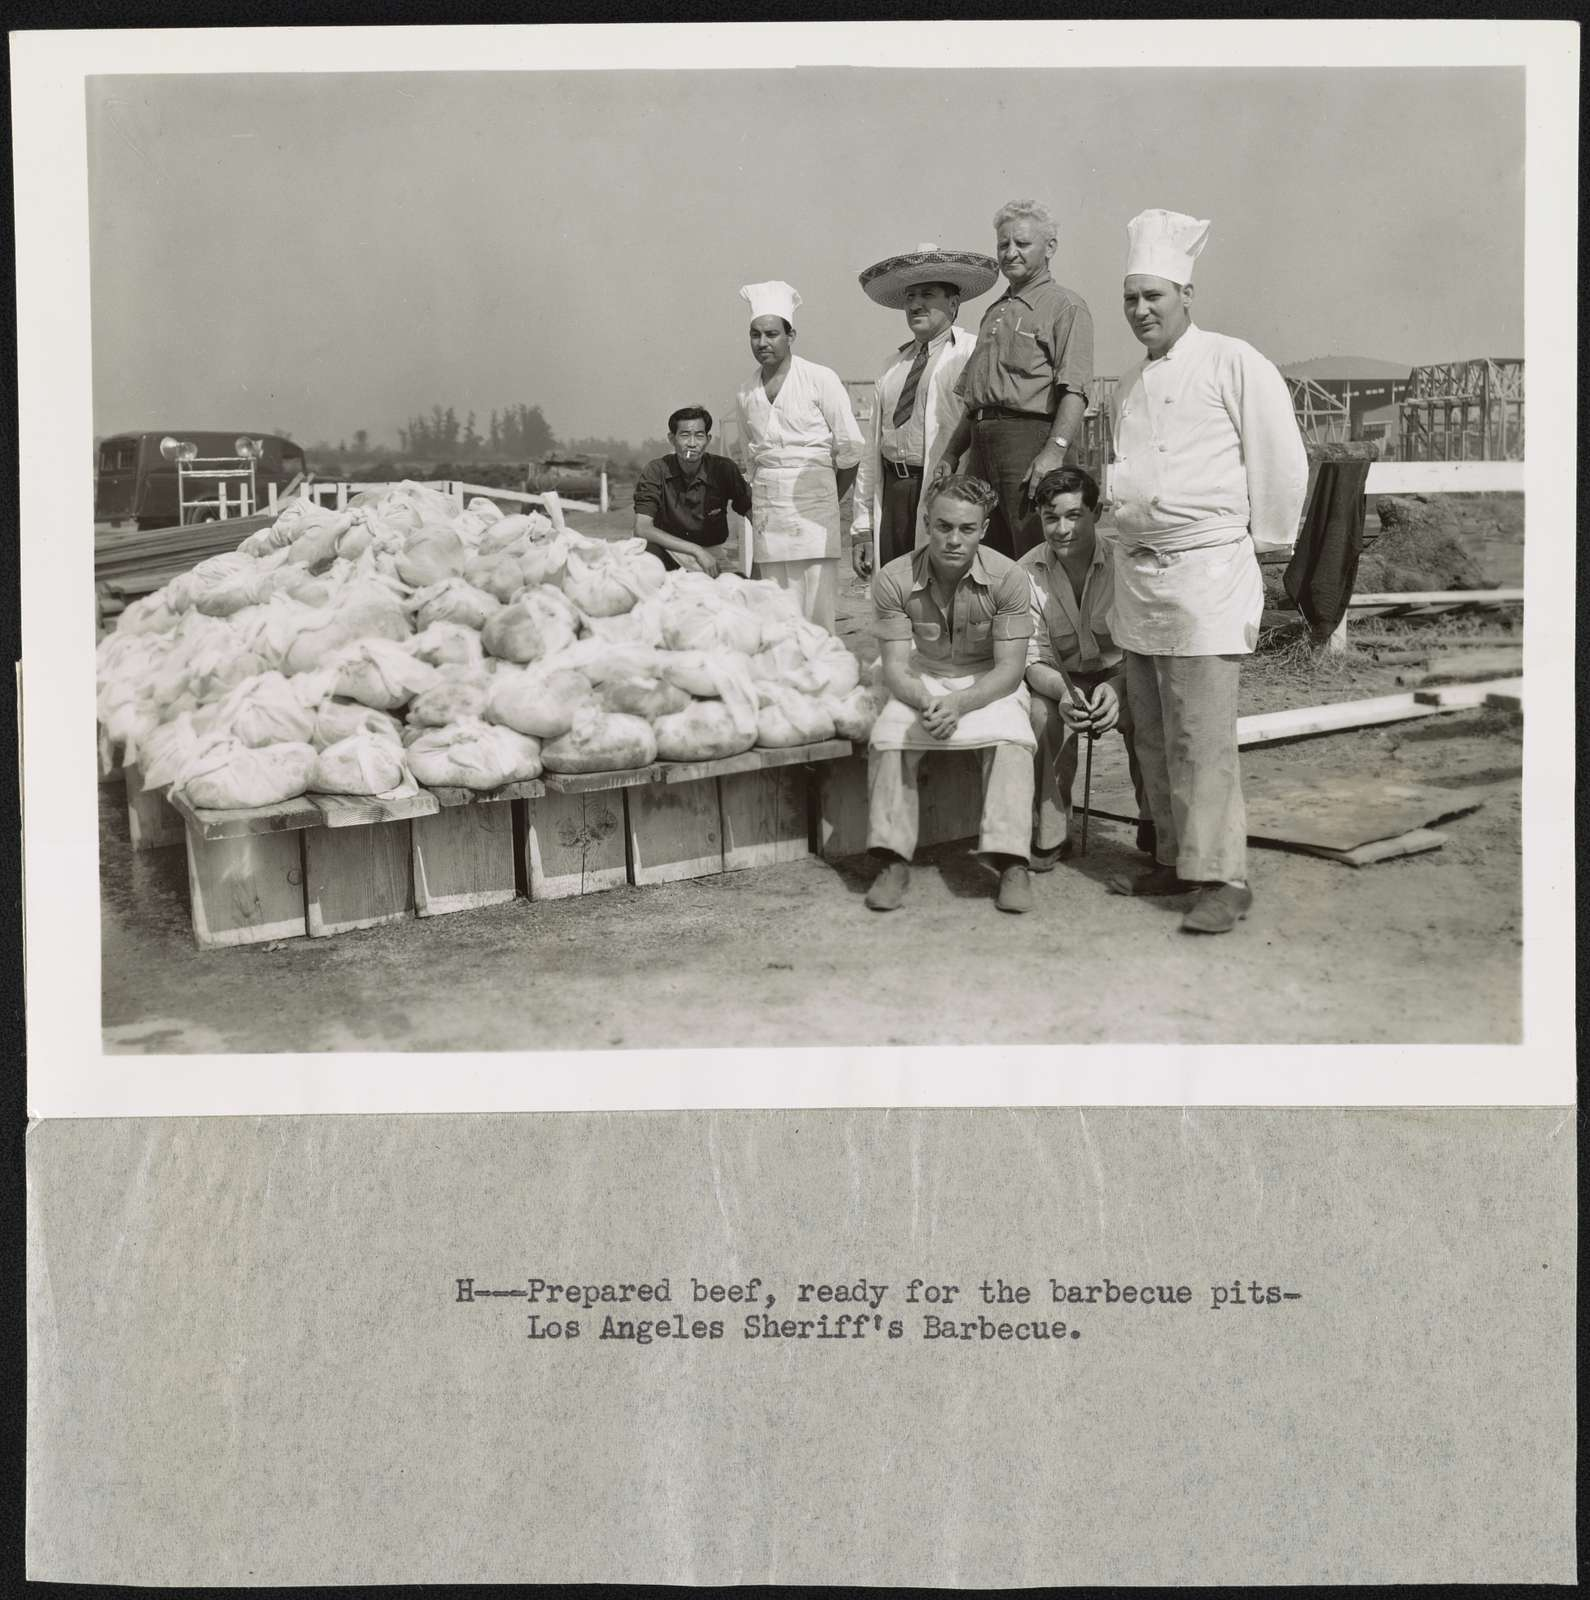 Prepared beef, ready for the barbecue pits - Los Angeles Sheriff's barbecue